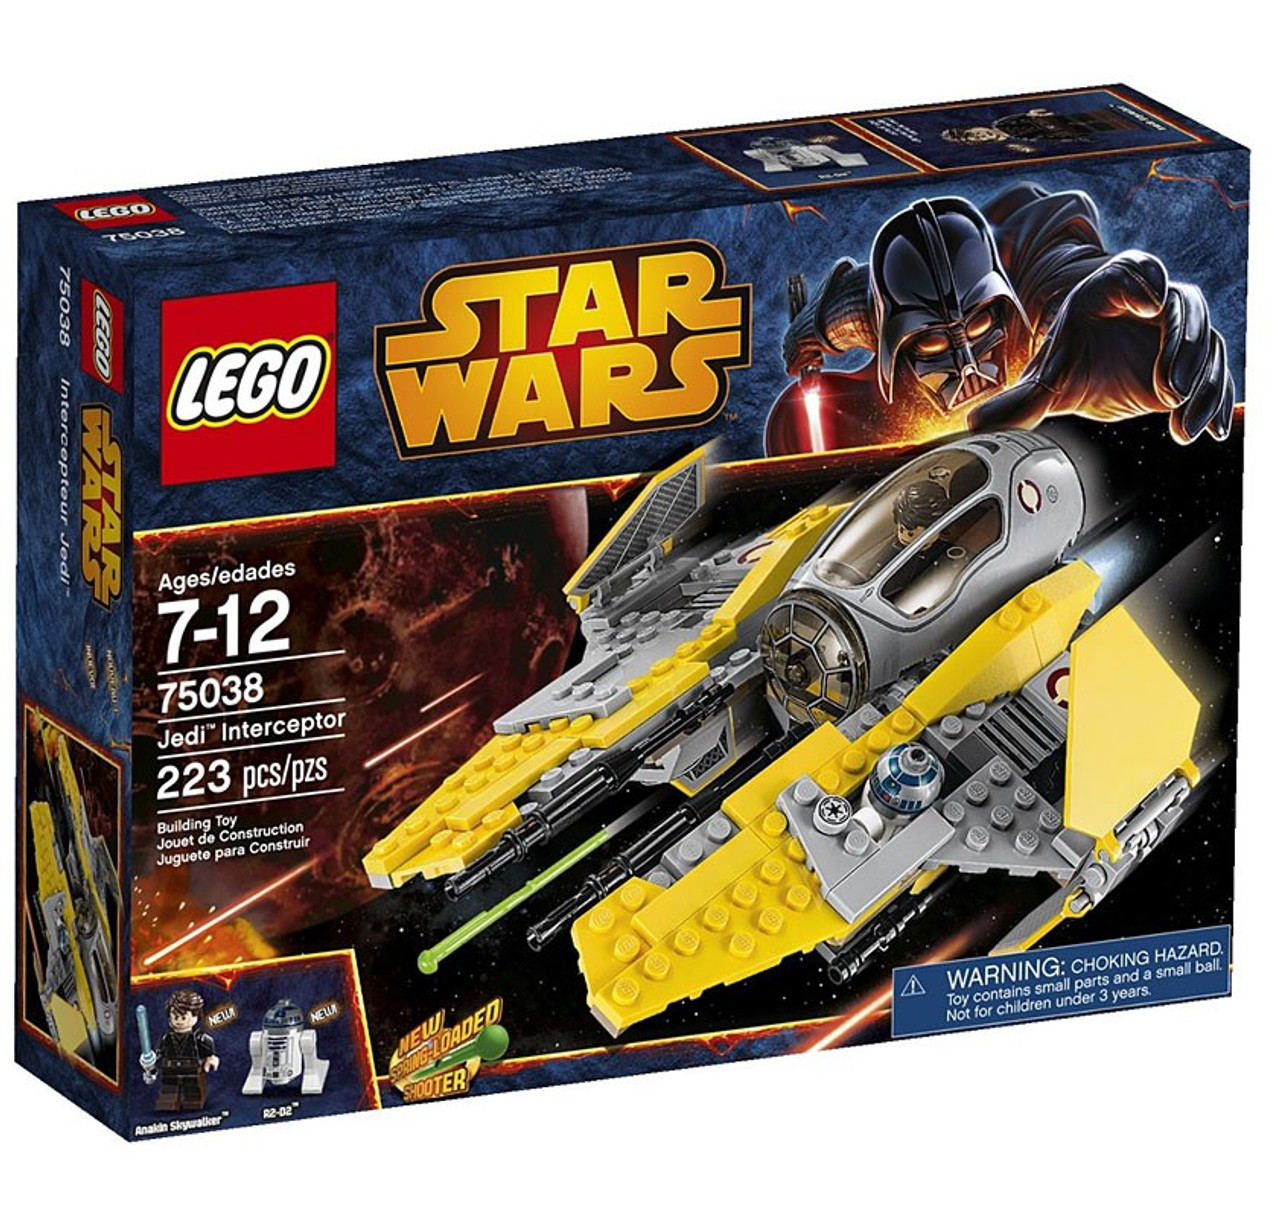 Lego Star Wars Revenge Of The Sith Jedi Interceptor Set 75038 Toywiz